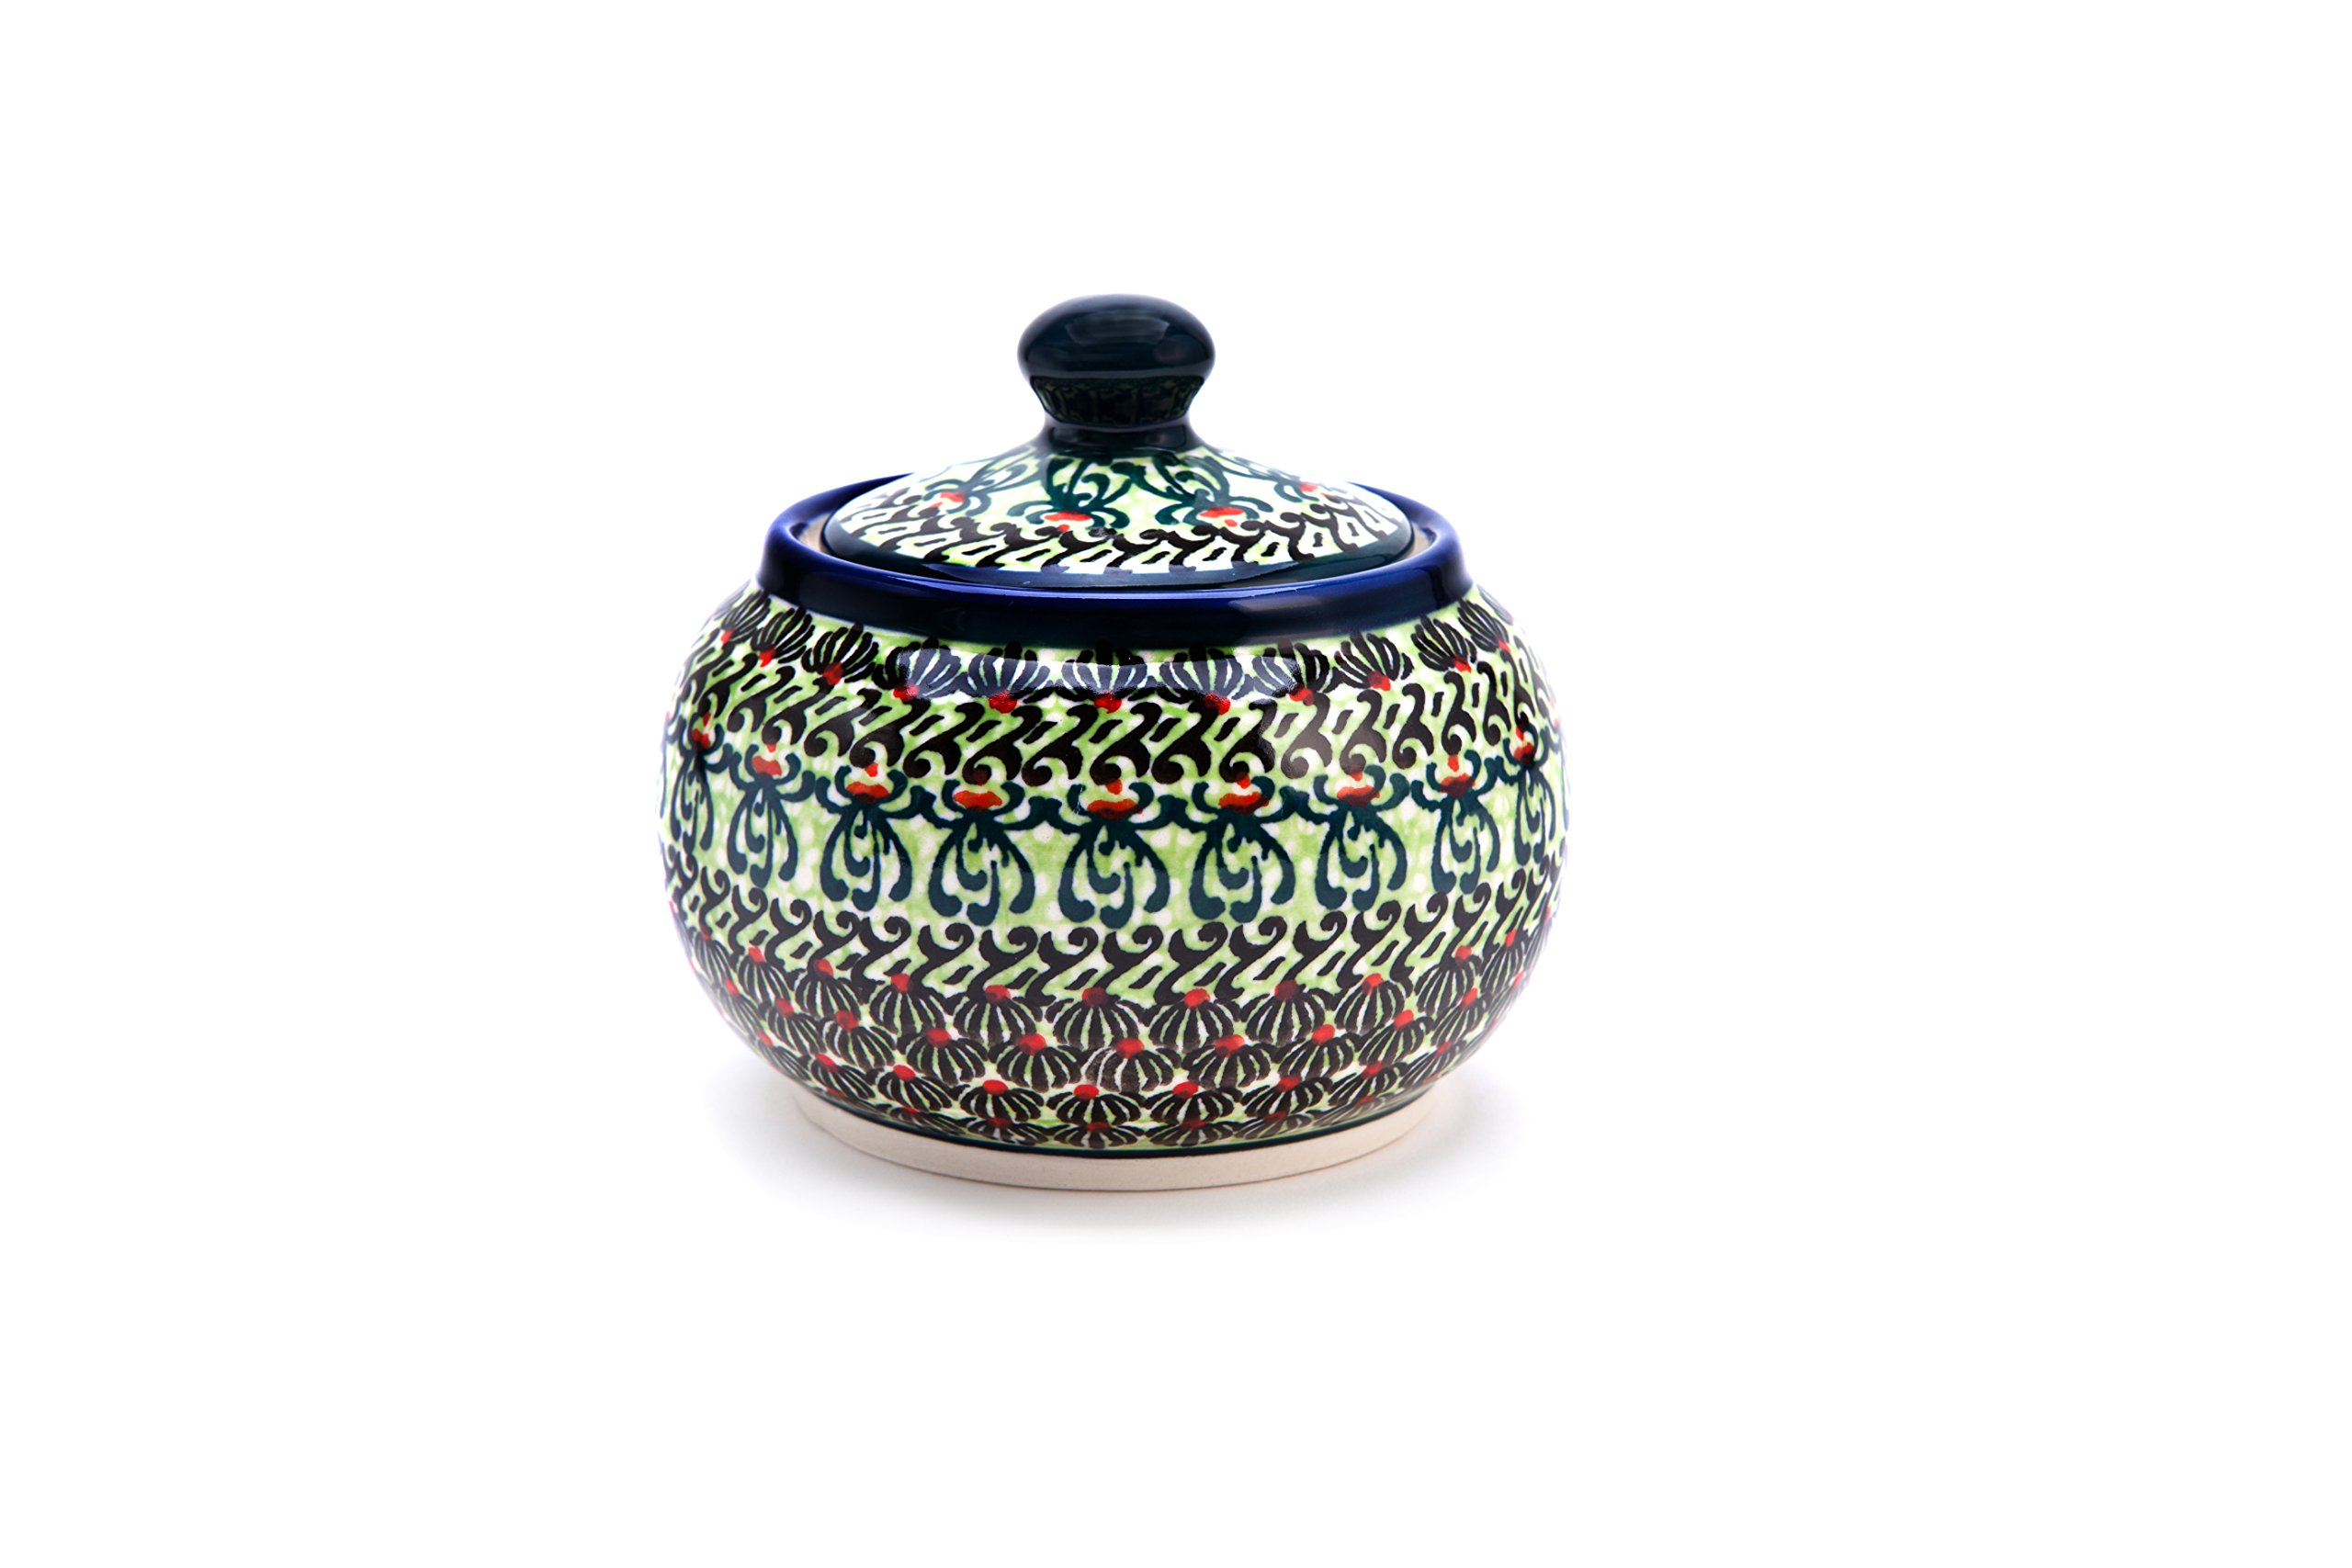 Hand-Decorated Polish Pottery Sugar Bowl Round, Volume: 0,3 l Ø 10.7 cm H = 9,3 cm Decoration DU181